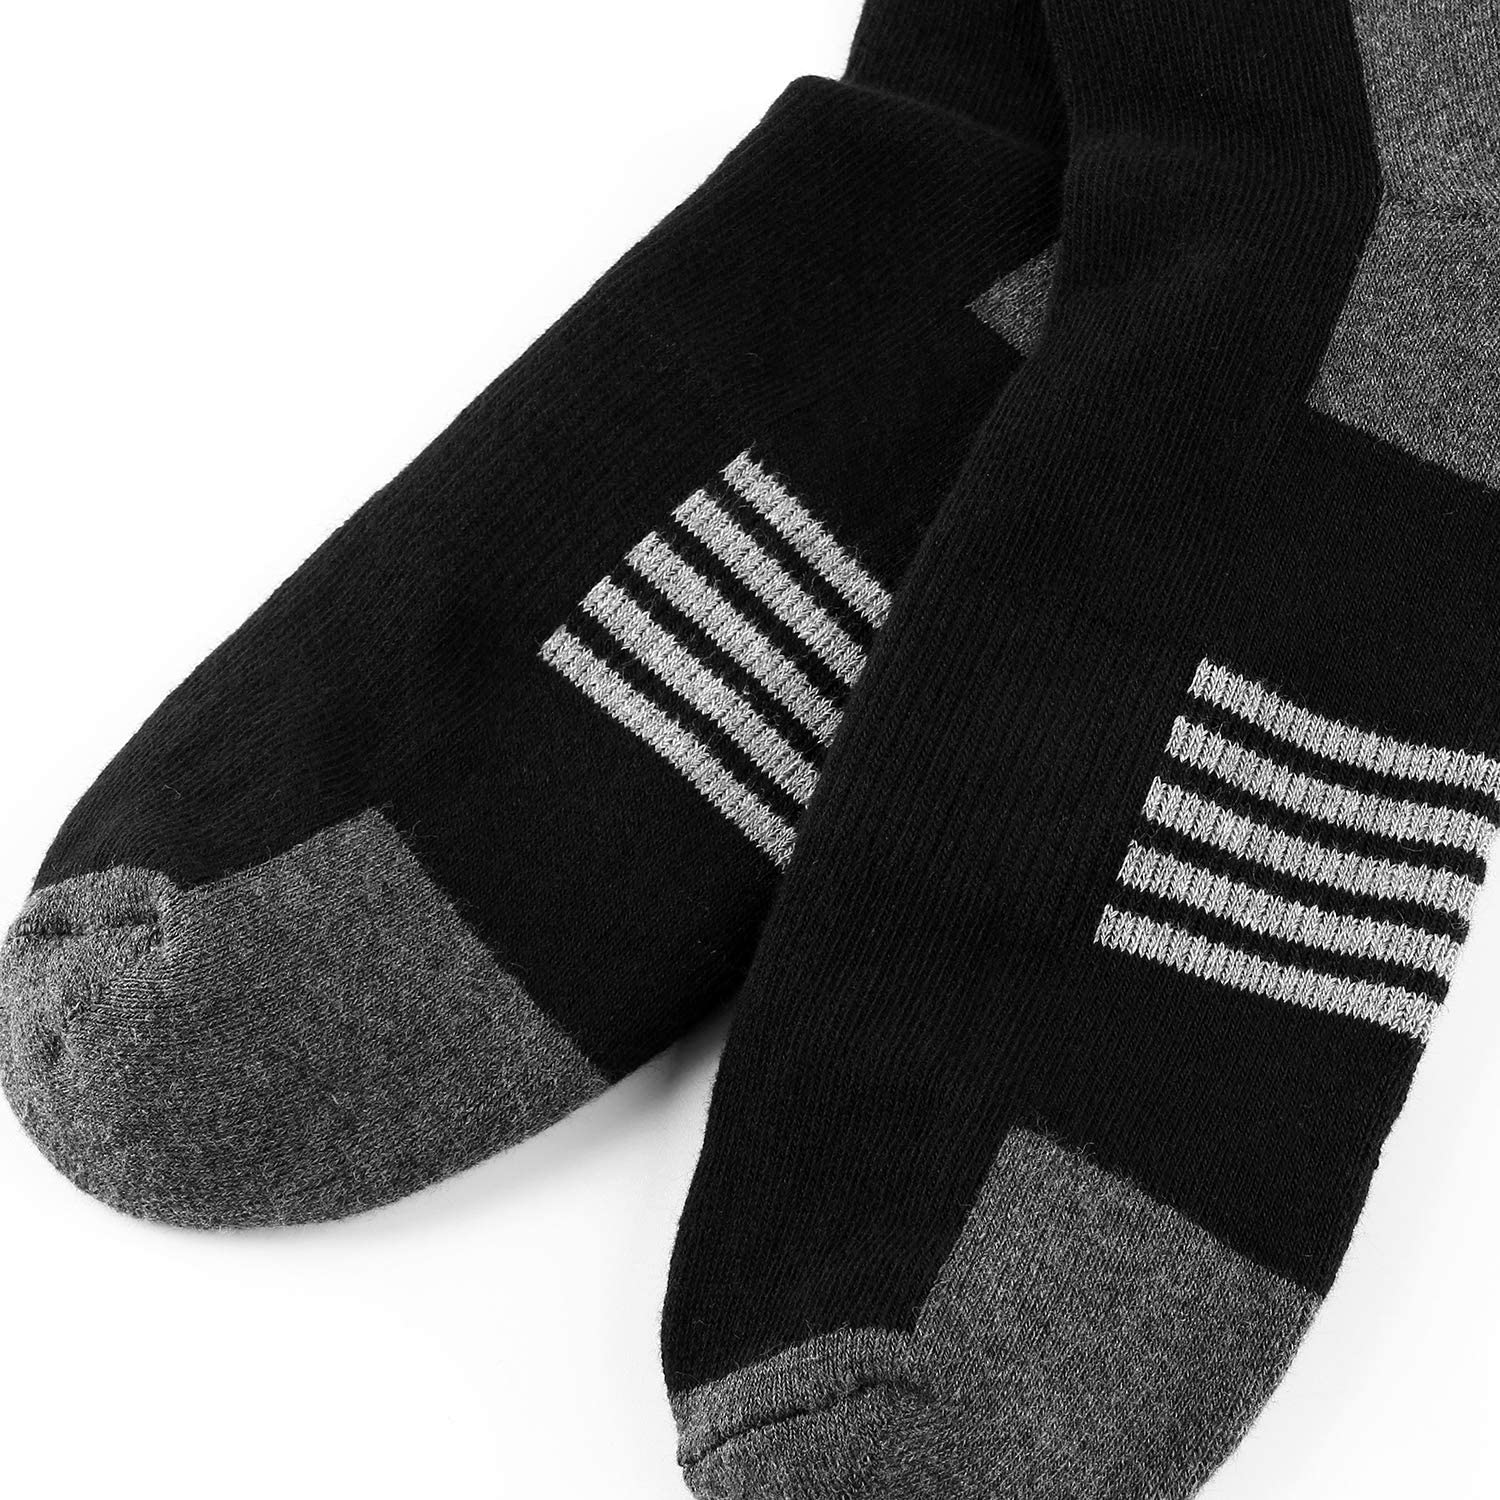 Ueither Mens Comfortable Cotton Cushioned Performance Crew Socks 6 Packs